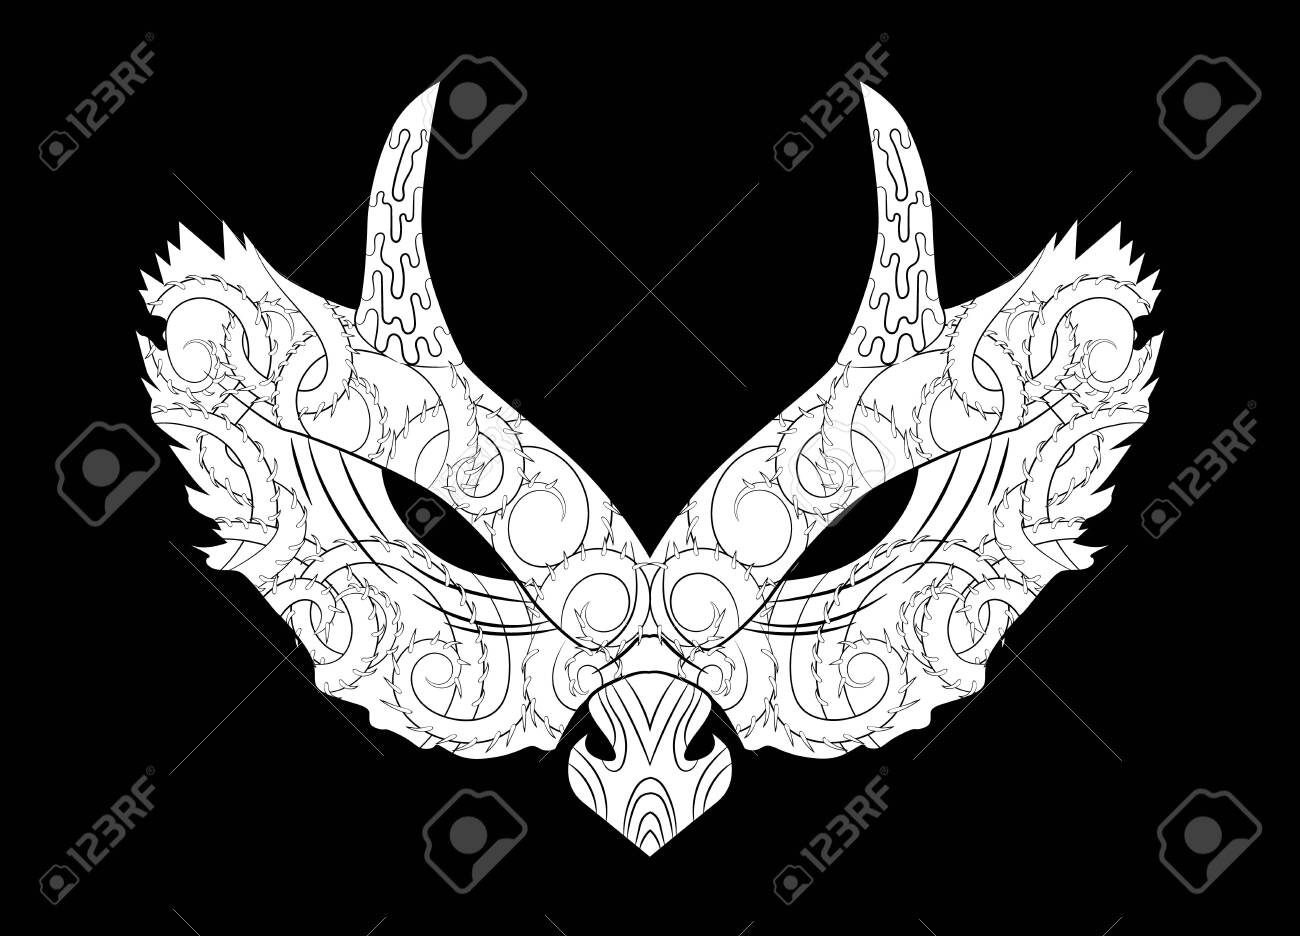 Adult coloring page with Halloween symbol - mask - 123192644